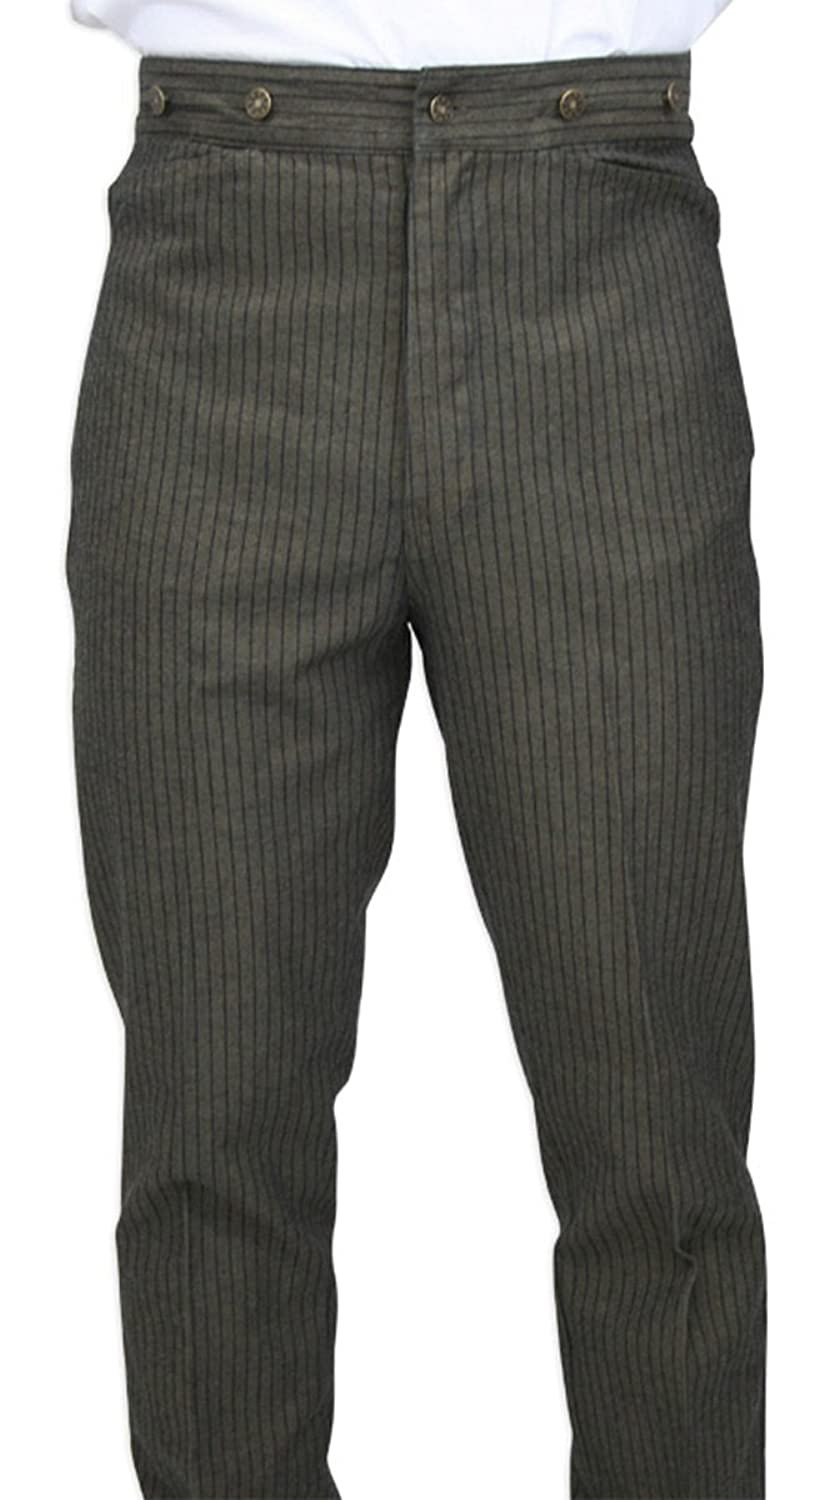 1920s Men's Pants History: Oxford Bags, Plus Four Knickers, Overalls High Waist Cotton Ludlow Striped Trousers $59.95 AT vintagedancer.com